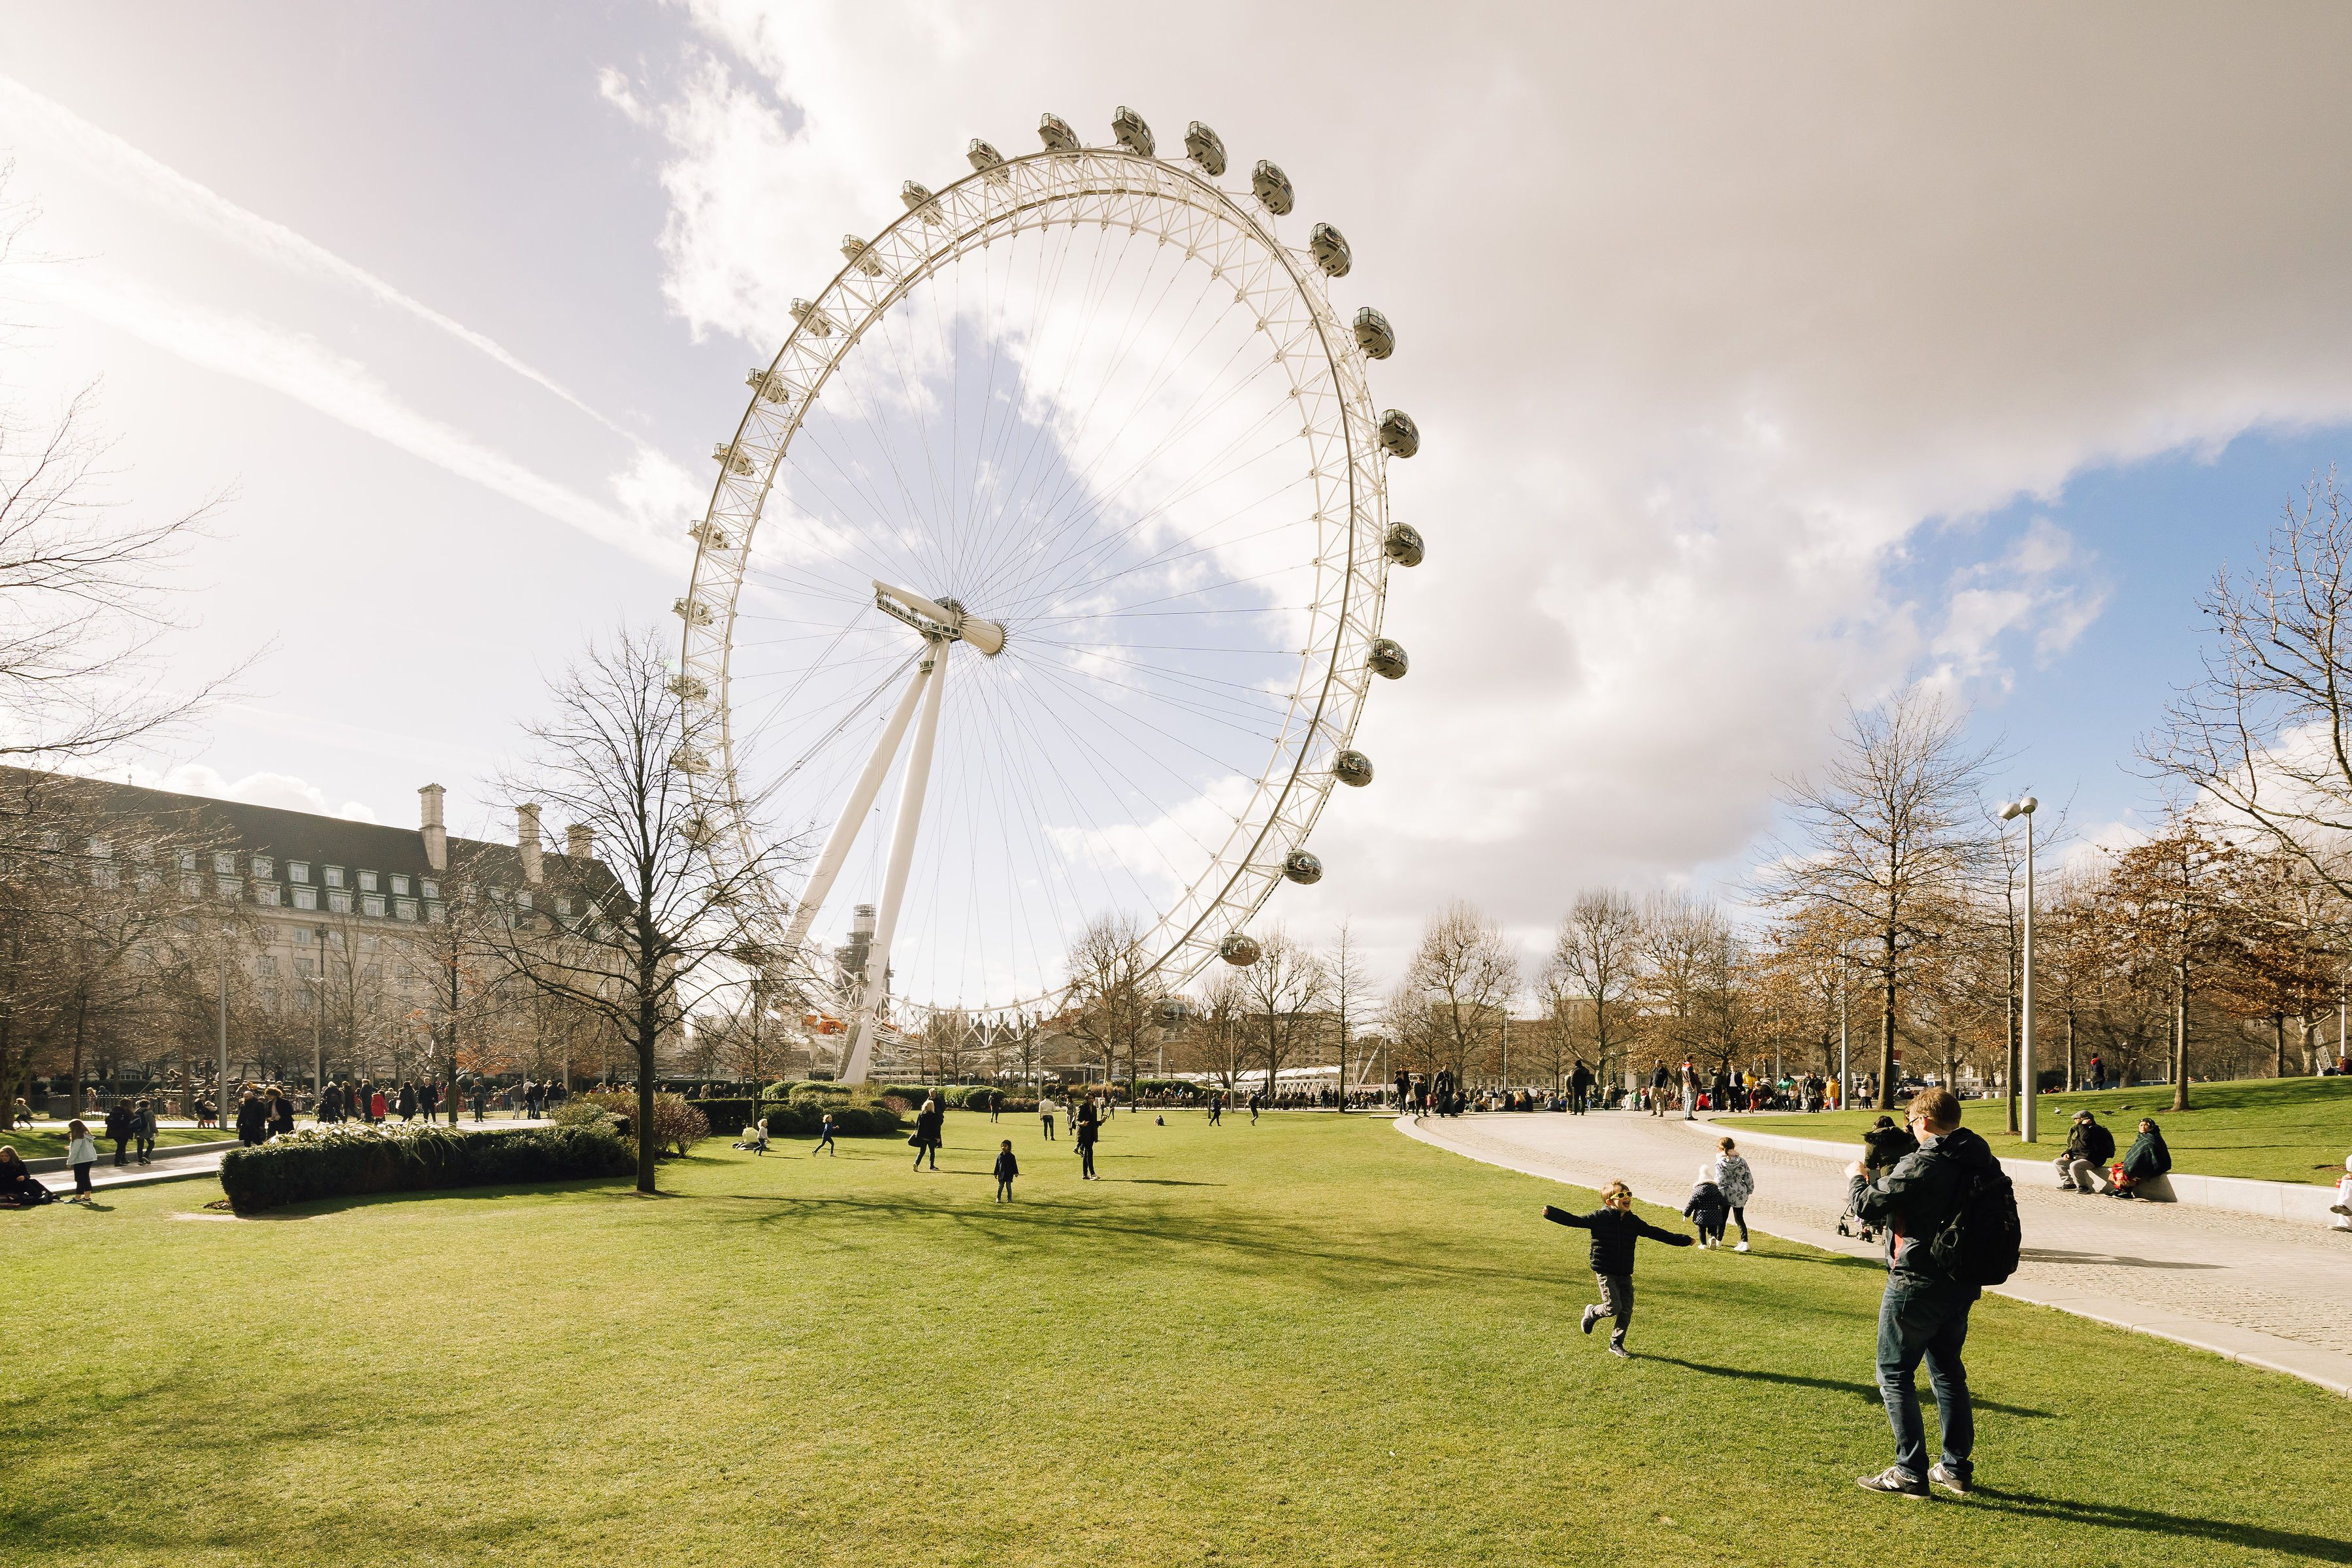 15 Fun Facts About The London Eye